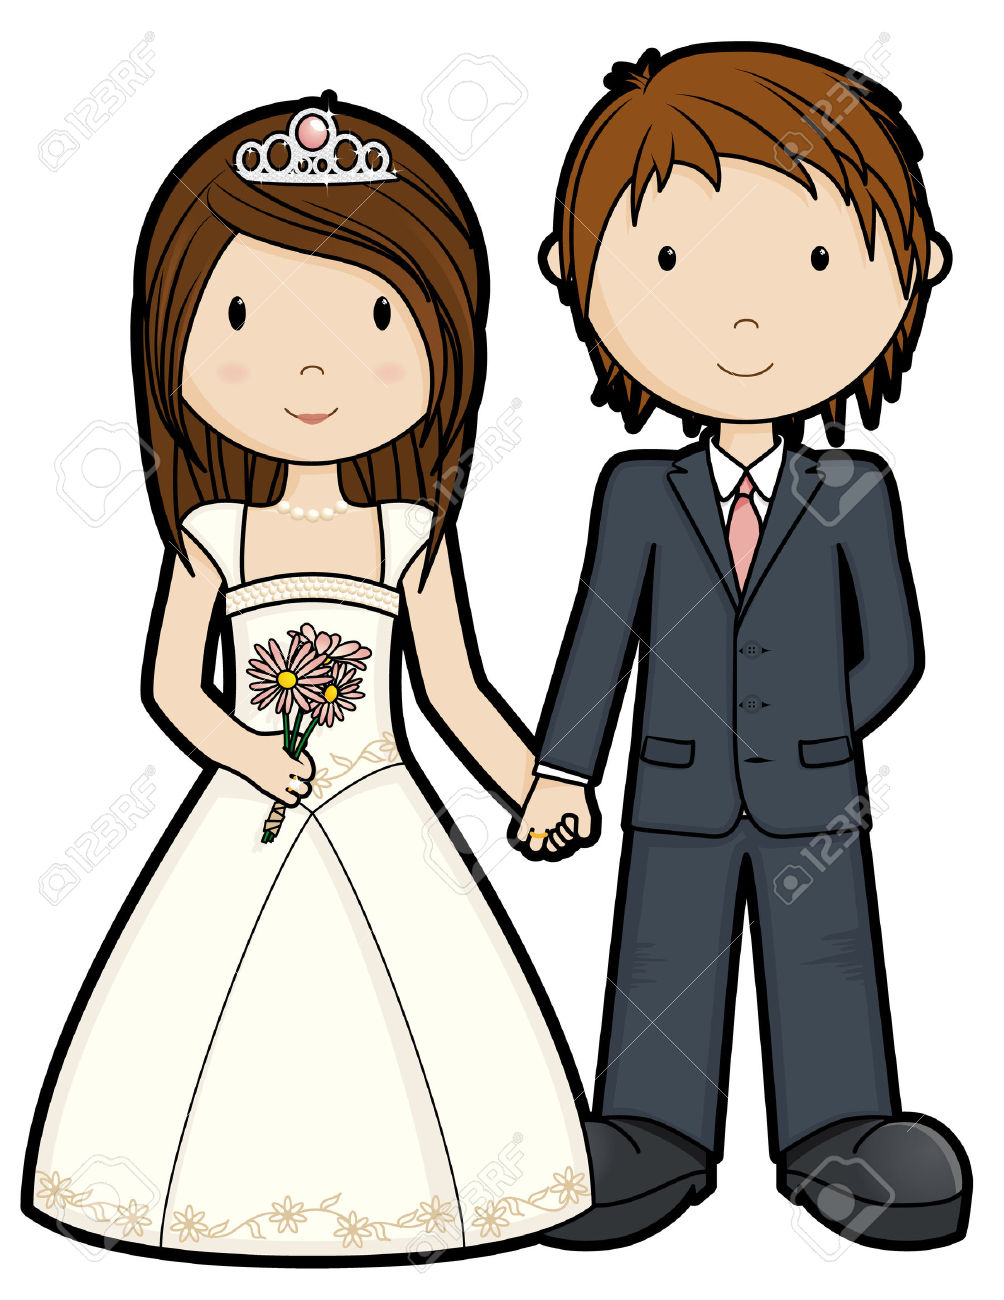 1004x1300 Couple Clipart Just Married